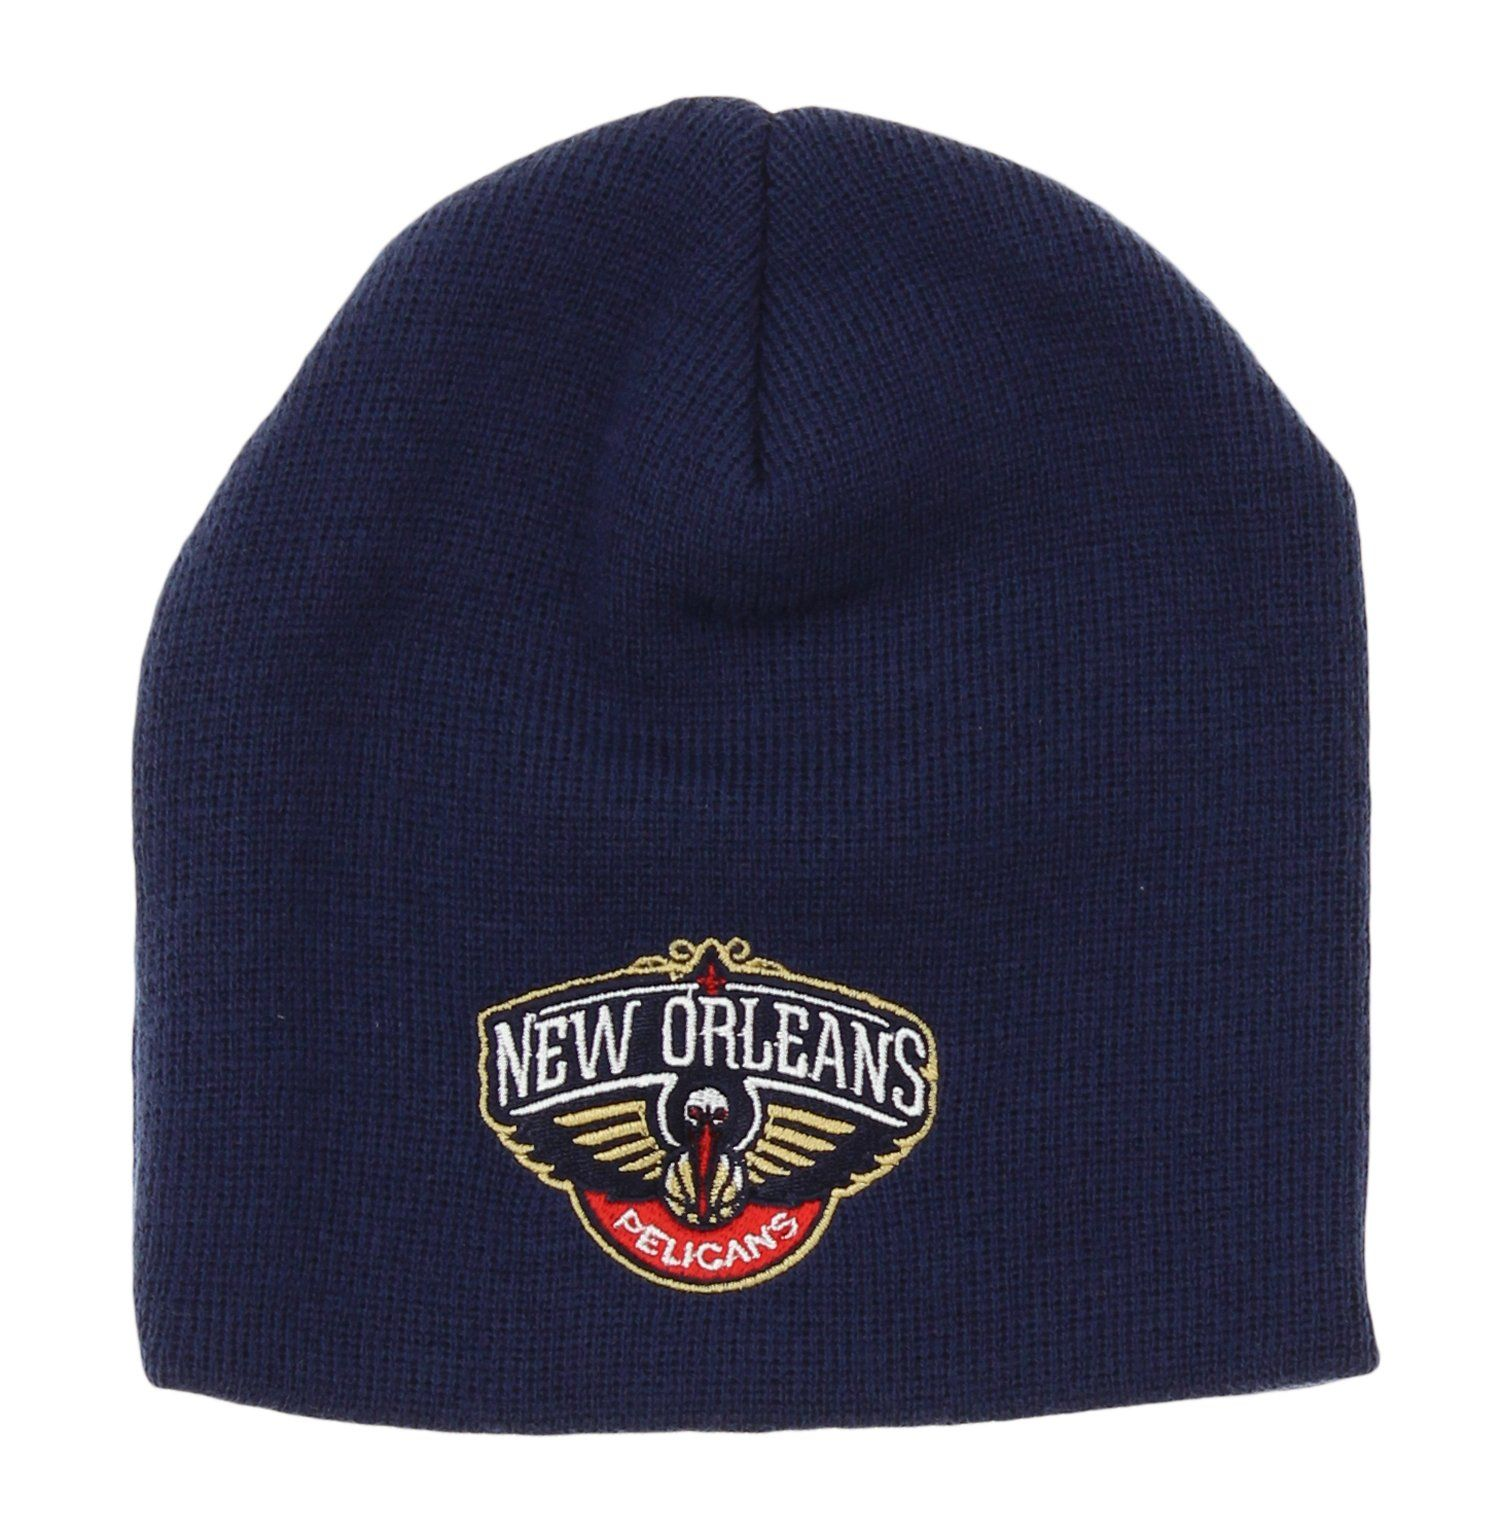 Adidas Nba Toddlers New Orleans Pelicans Basic Cuffless Knit